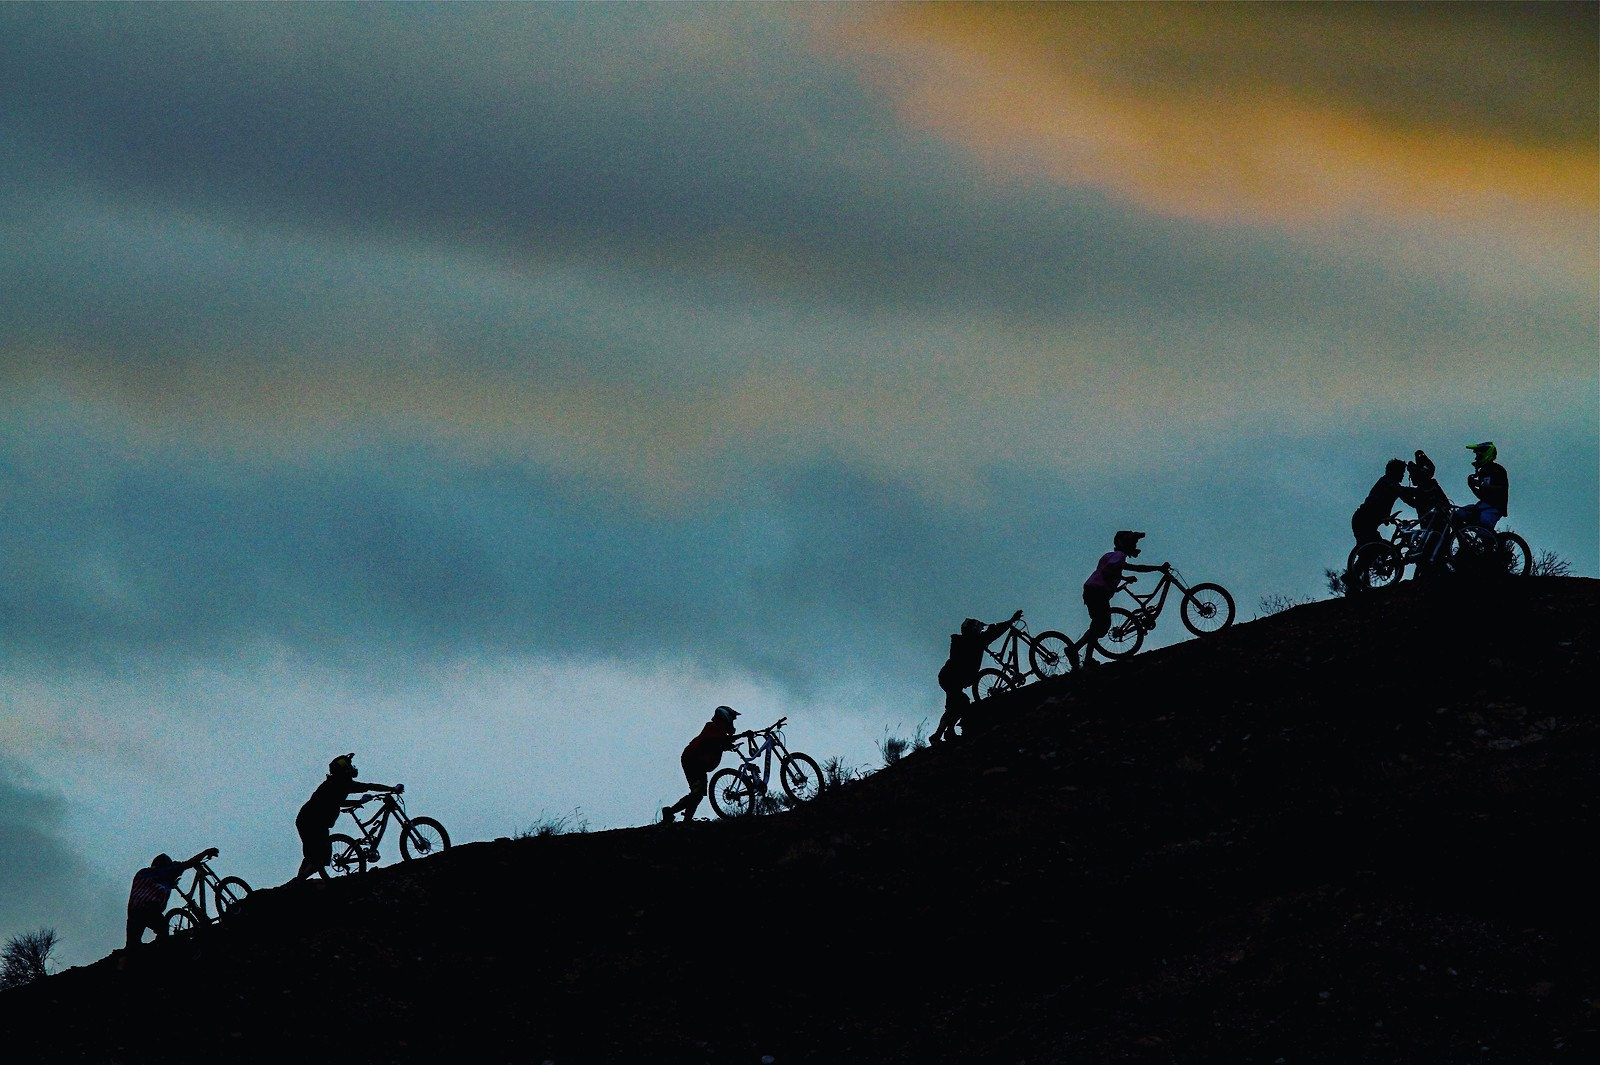 #rideordie with the Bros - Malcolm Mclaws - Mountain Biking Pictures - Vital MTB